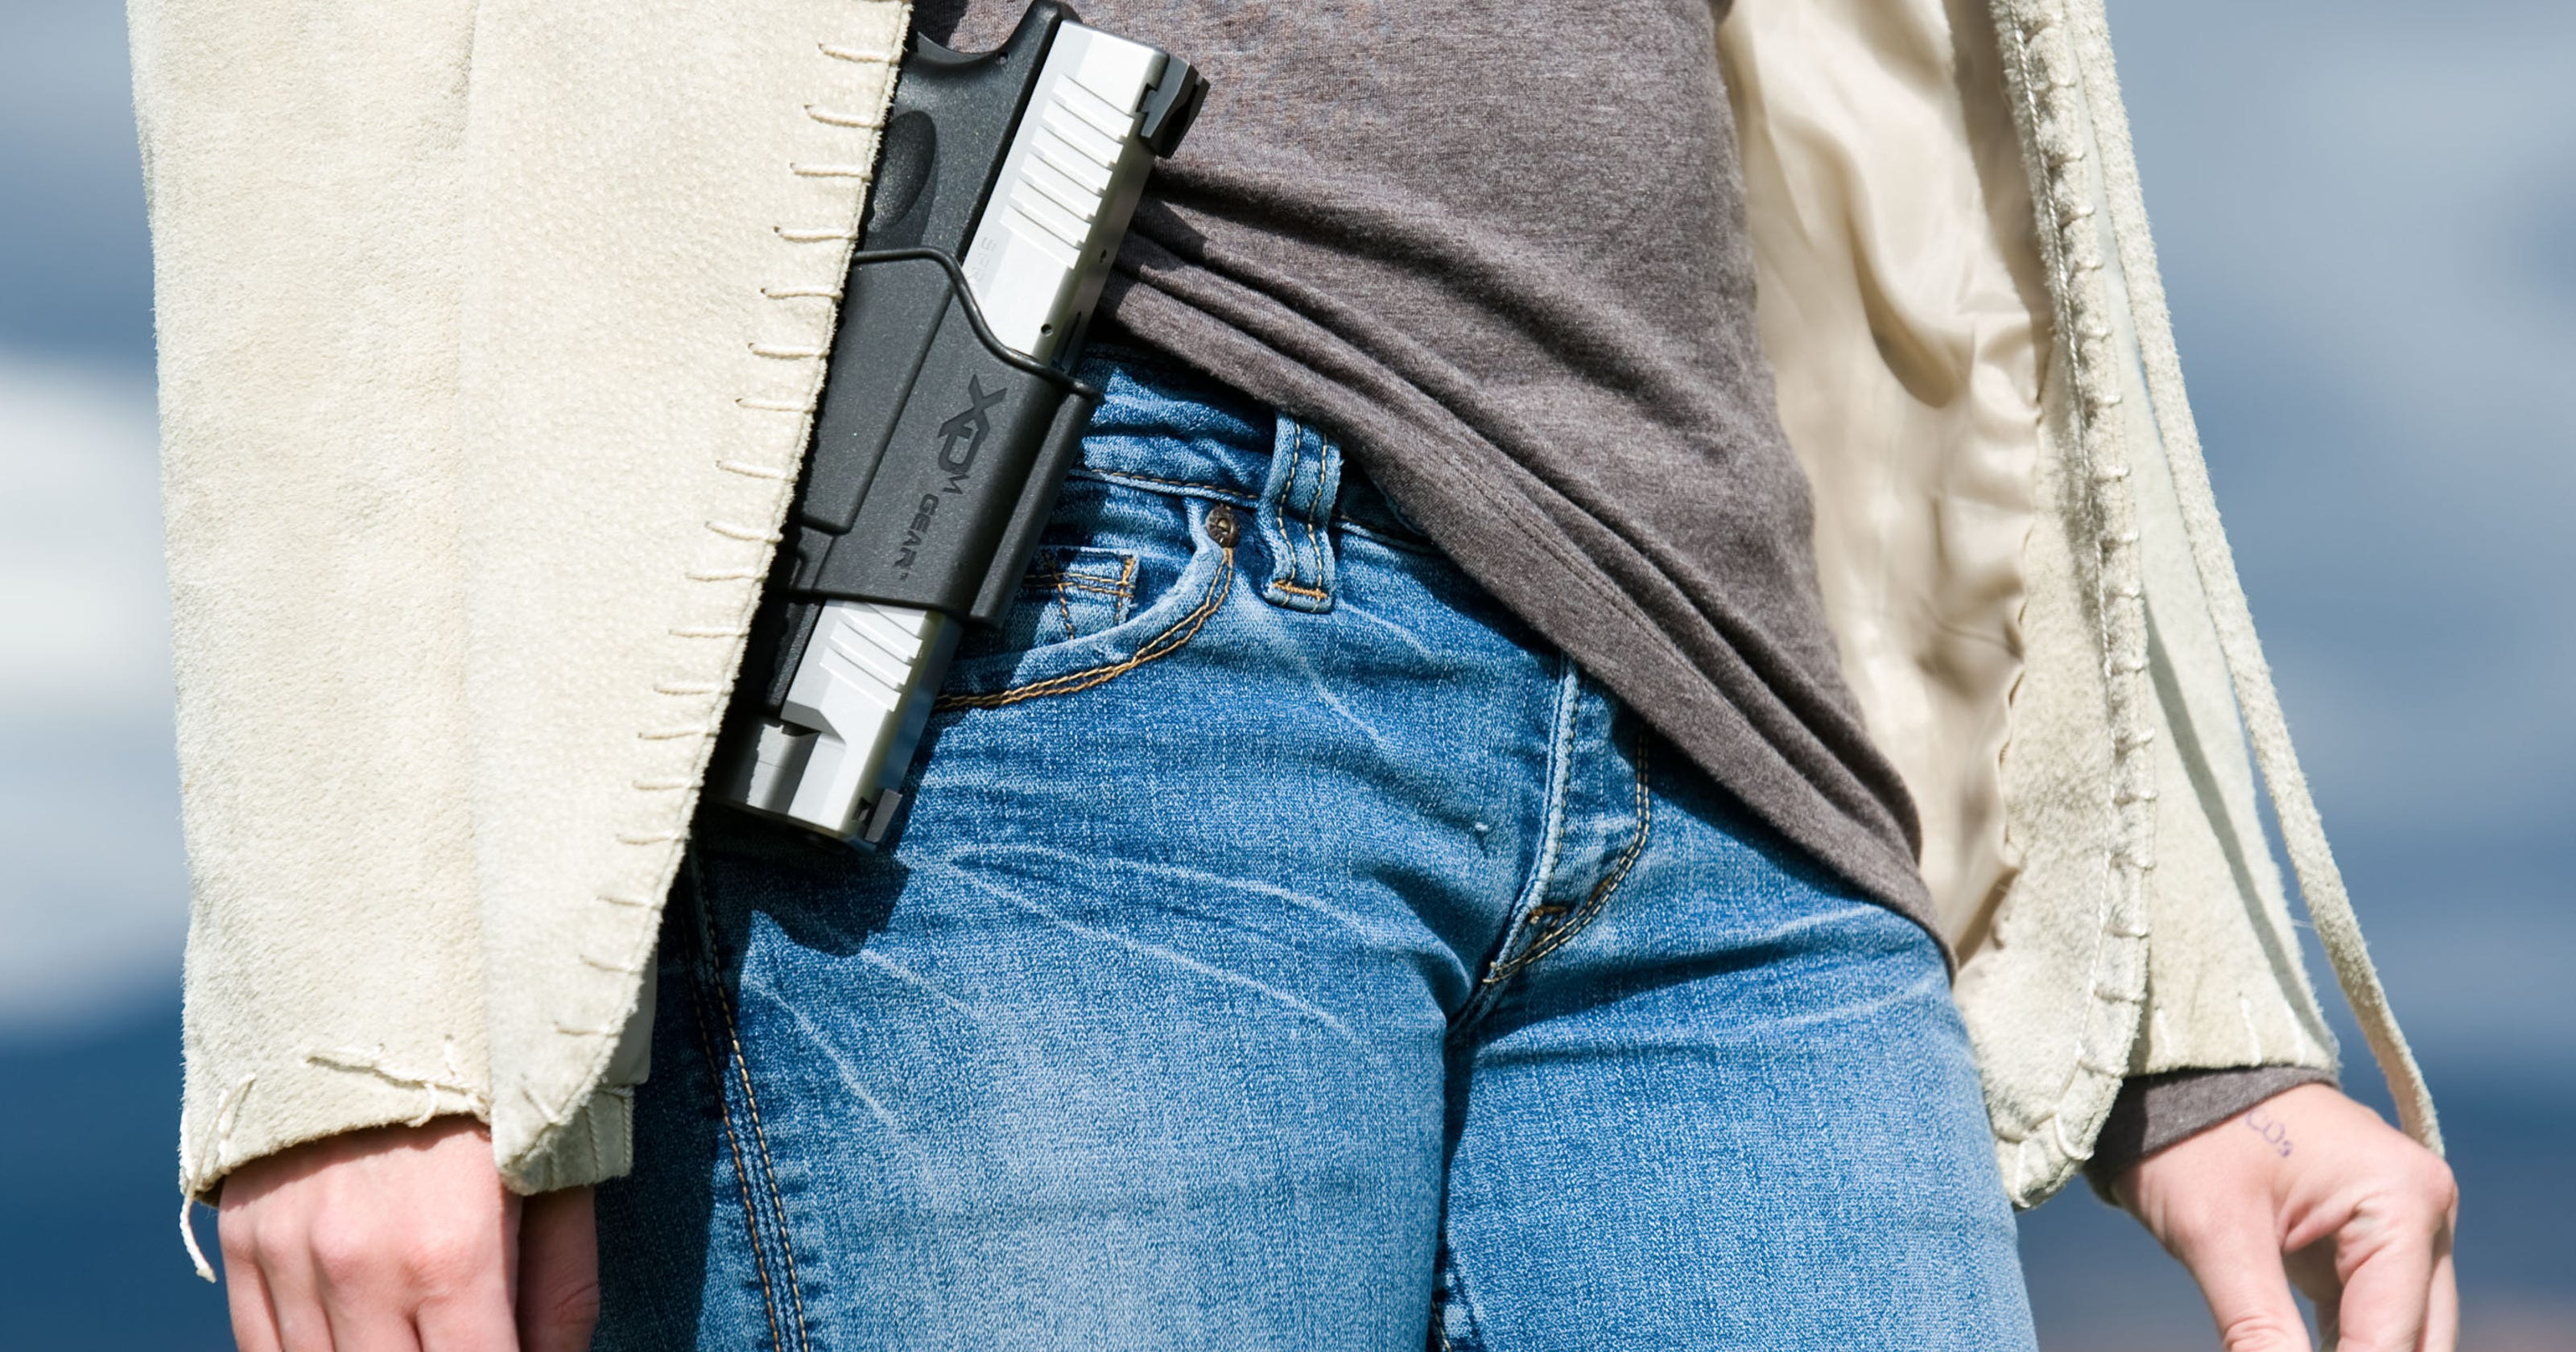 Nevada firearm laws: What you need to know